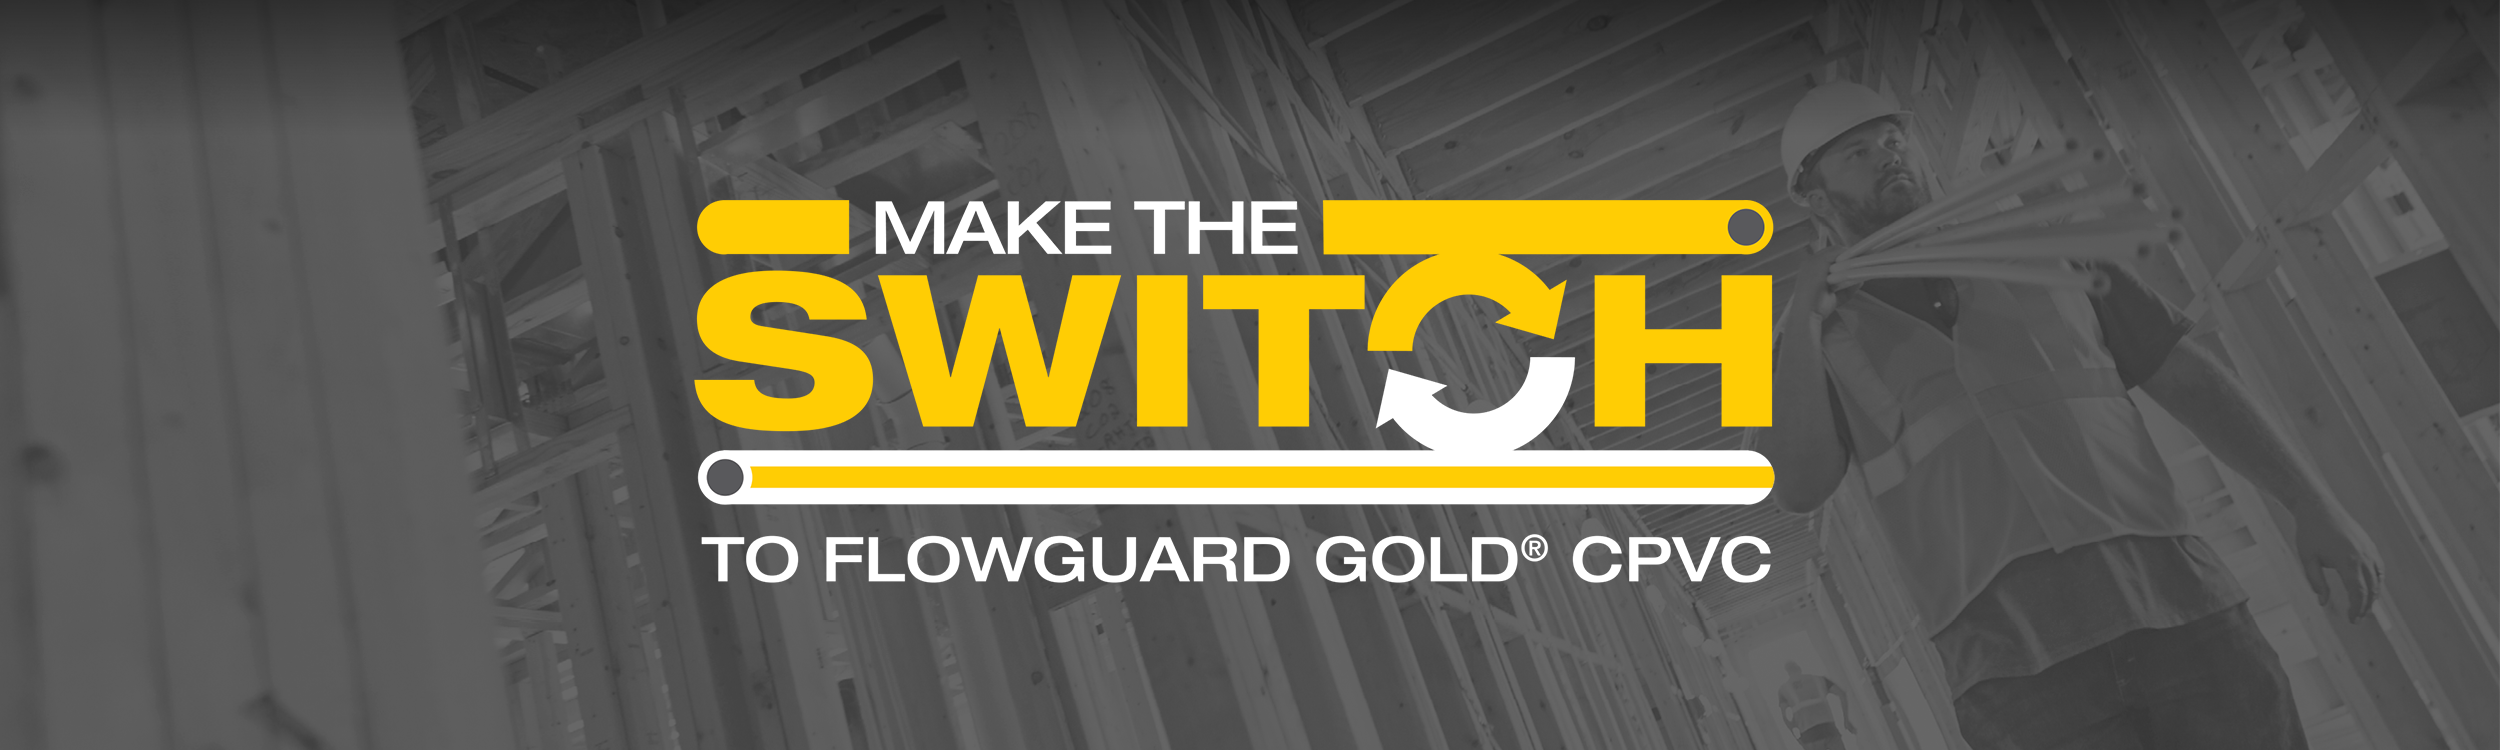 Make the Switch to FlowGuard Gold CPVC | Lubrizol Advanced